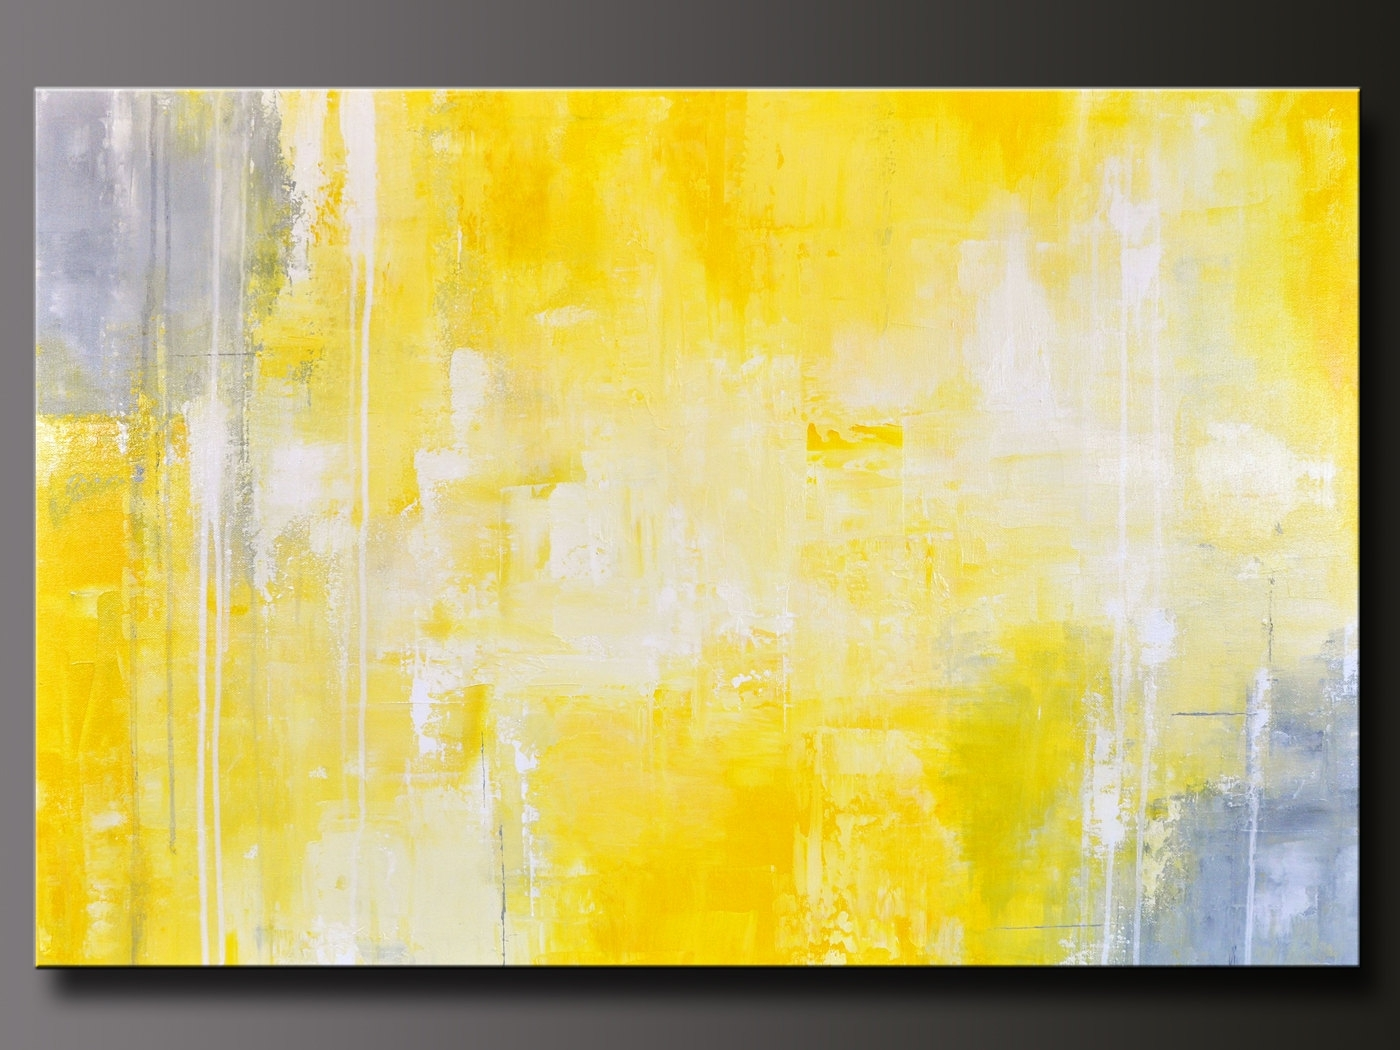 Abstract In Yellow 13 Abstract Acrylic Painting, Yellow And Gray within Yellow And Gray Wall Art (Image 3 of 20)